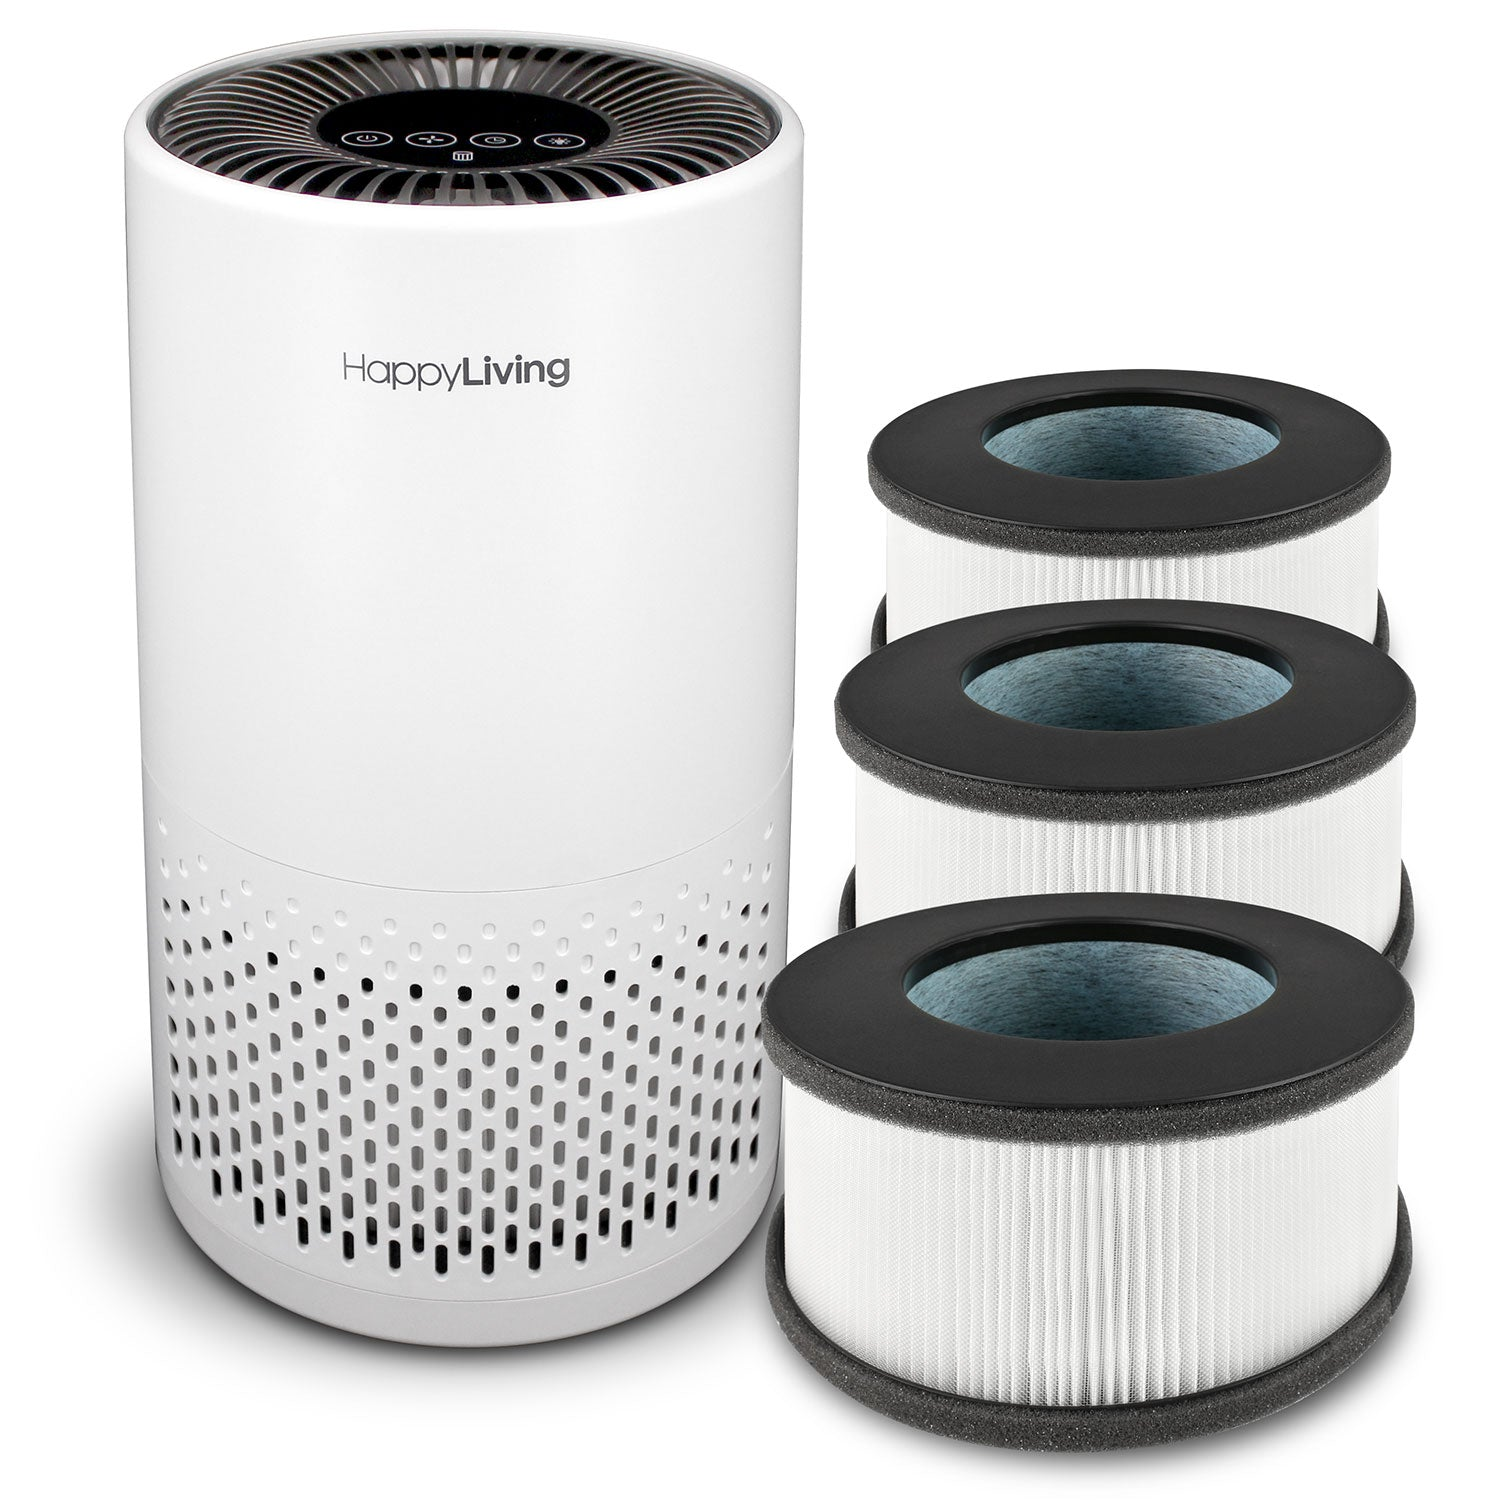 Happy Living HL-002 Air Purifier + HEPA Filter Bundle